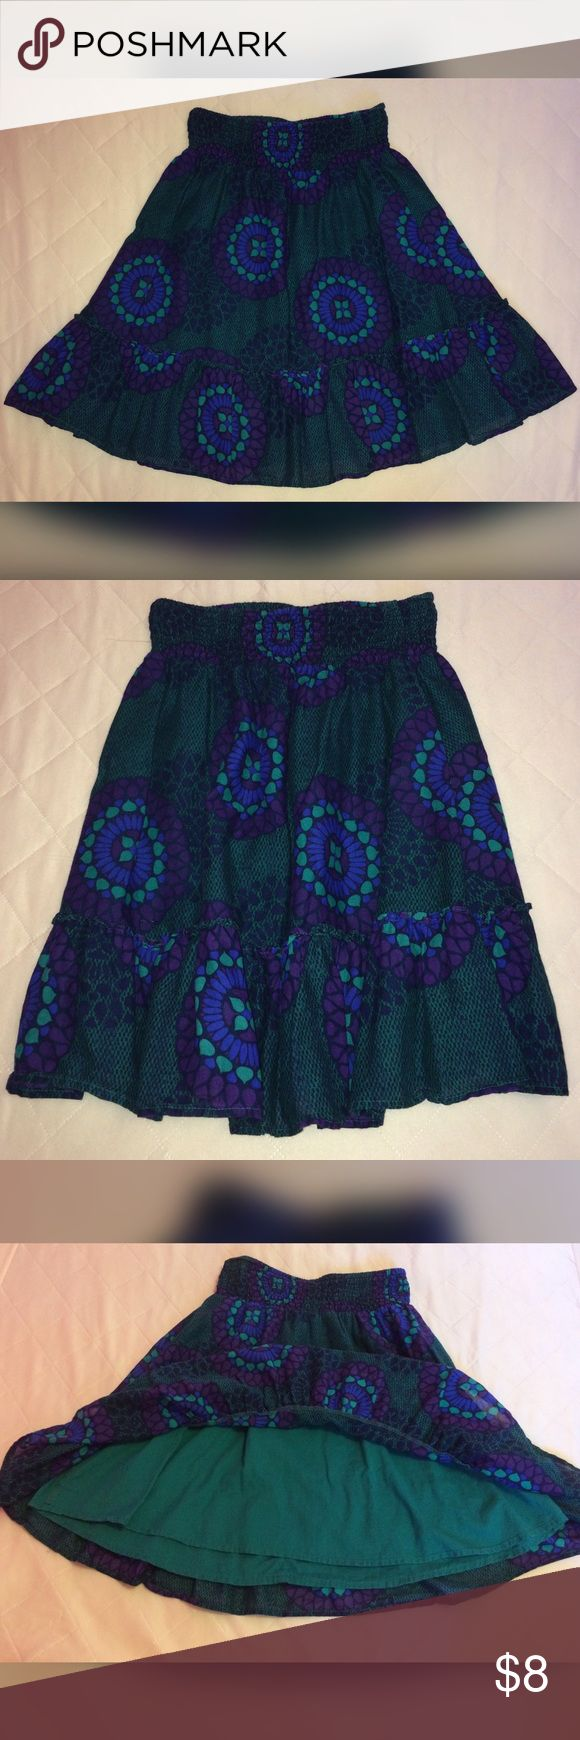 Old Navy Green & Purple Skirt Old Navy Skirt. Green & Purple. Built-in Under Skirt. Size XS. 18 inches long from top to bottom. Old Navy Skirts